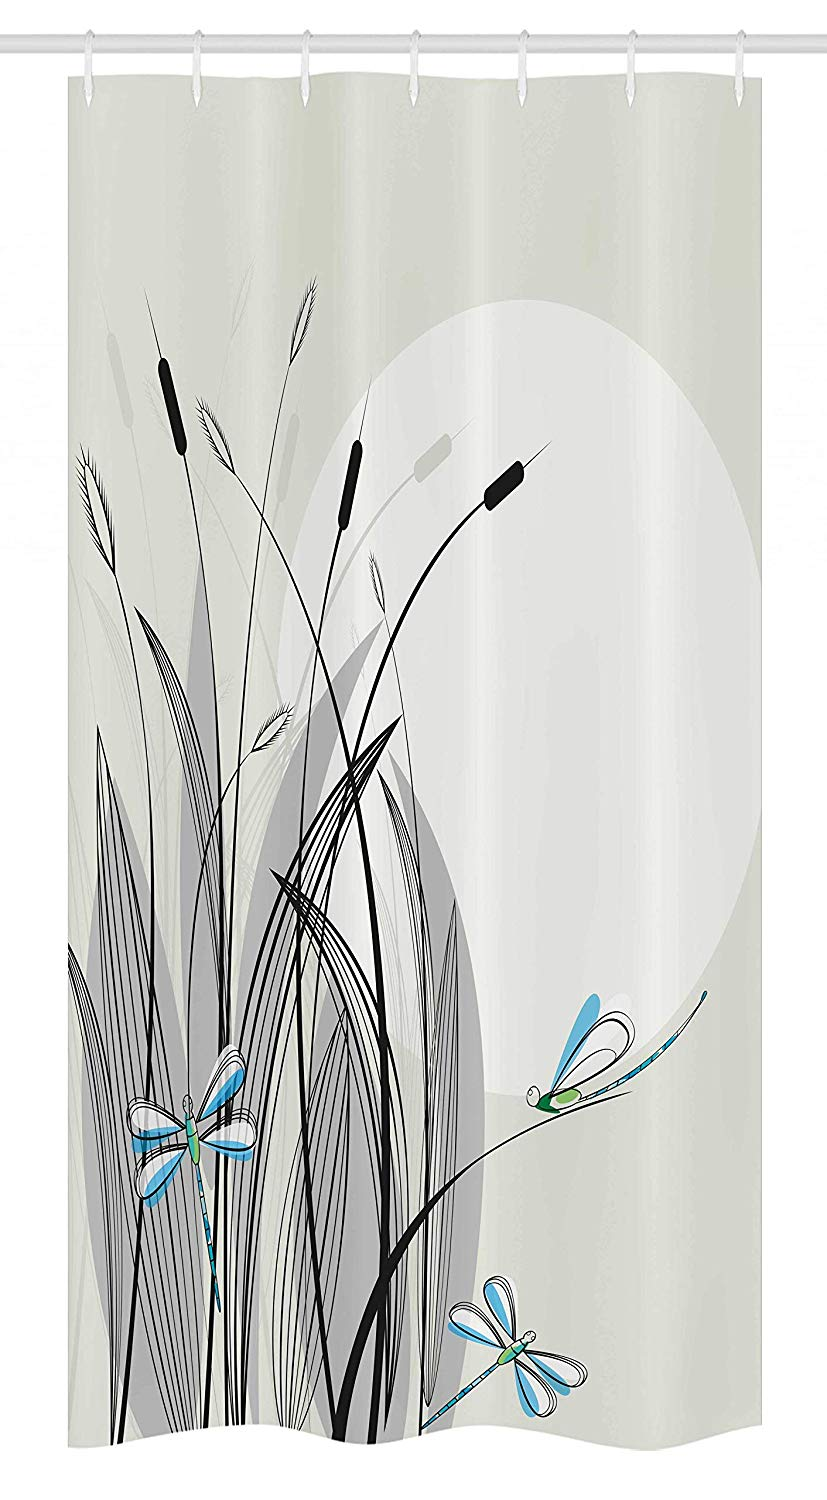 Ambesonne Dragonfly Stall Shower Curtain, Dragonflies on Flowers and Branches Flourishing Nature Spring Time Predator Print, Fabric Bathroom Decor Set with Hooks, 36